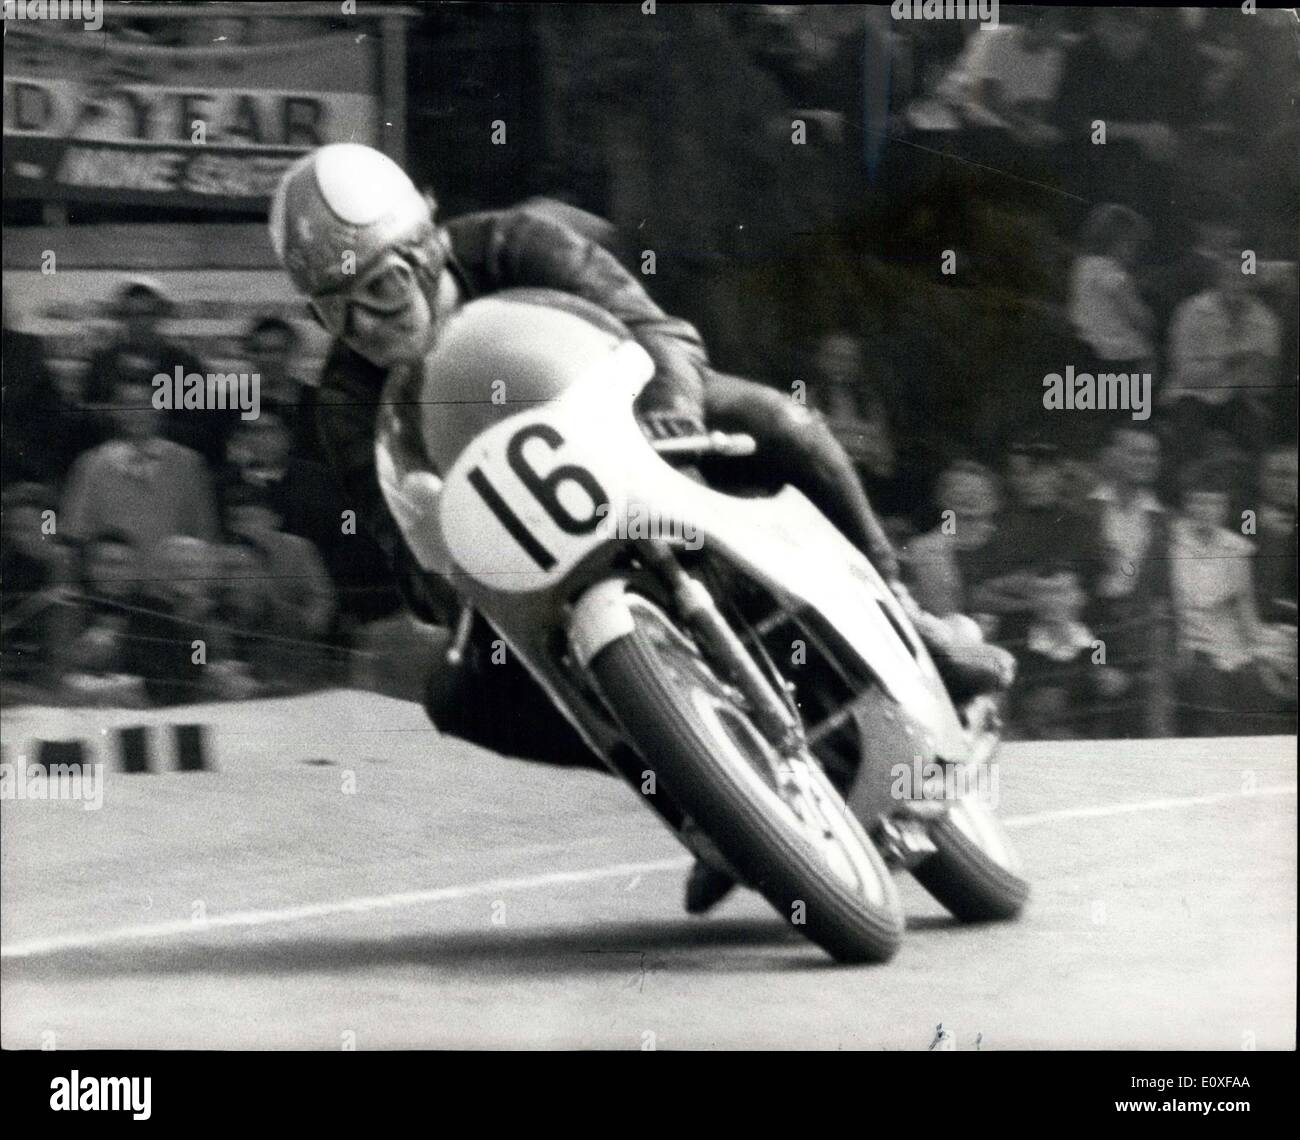 Aug. 31, 1966 - Eighth T.T.Victory for mike Hailwood : Mike Hailwood won the lightweight 250 c.c., T.T. Motorcycle Stock Photo